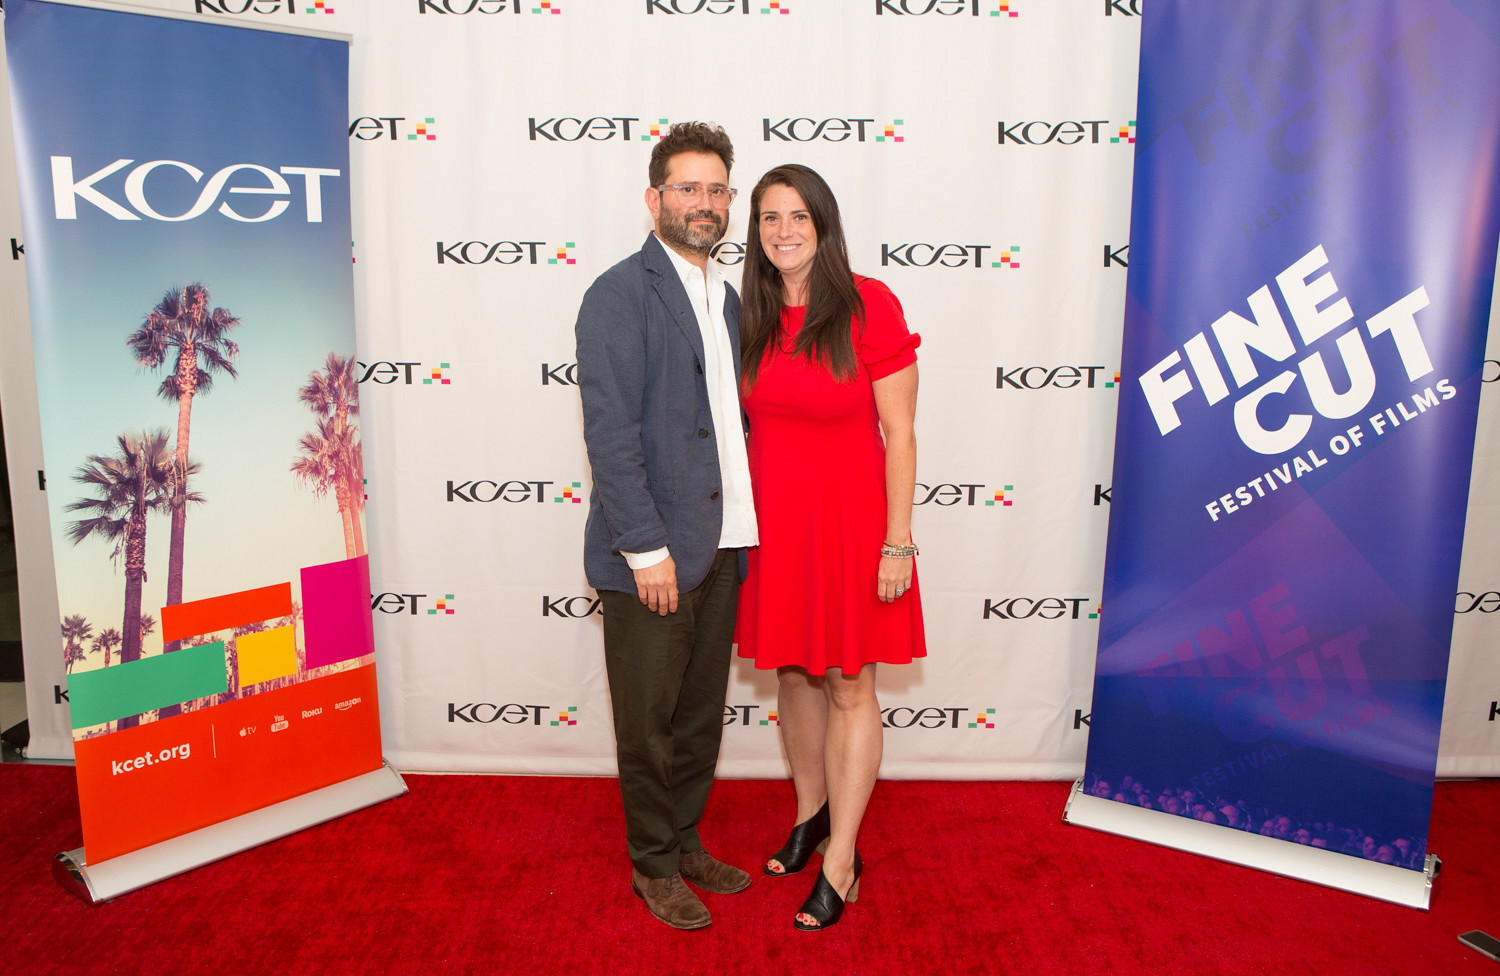 KCET Chief Creative Officer Juan Devis and Public Media Group of Southern California Chief Operating Officer Jamie Annunzio Myers arrive at KCET's FINE CUT Festival of Films at the Landmark Theatre on September 26, 2019.